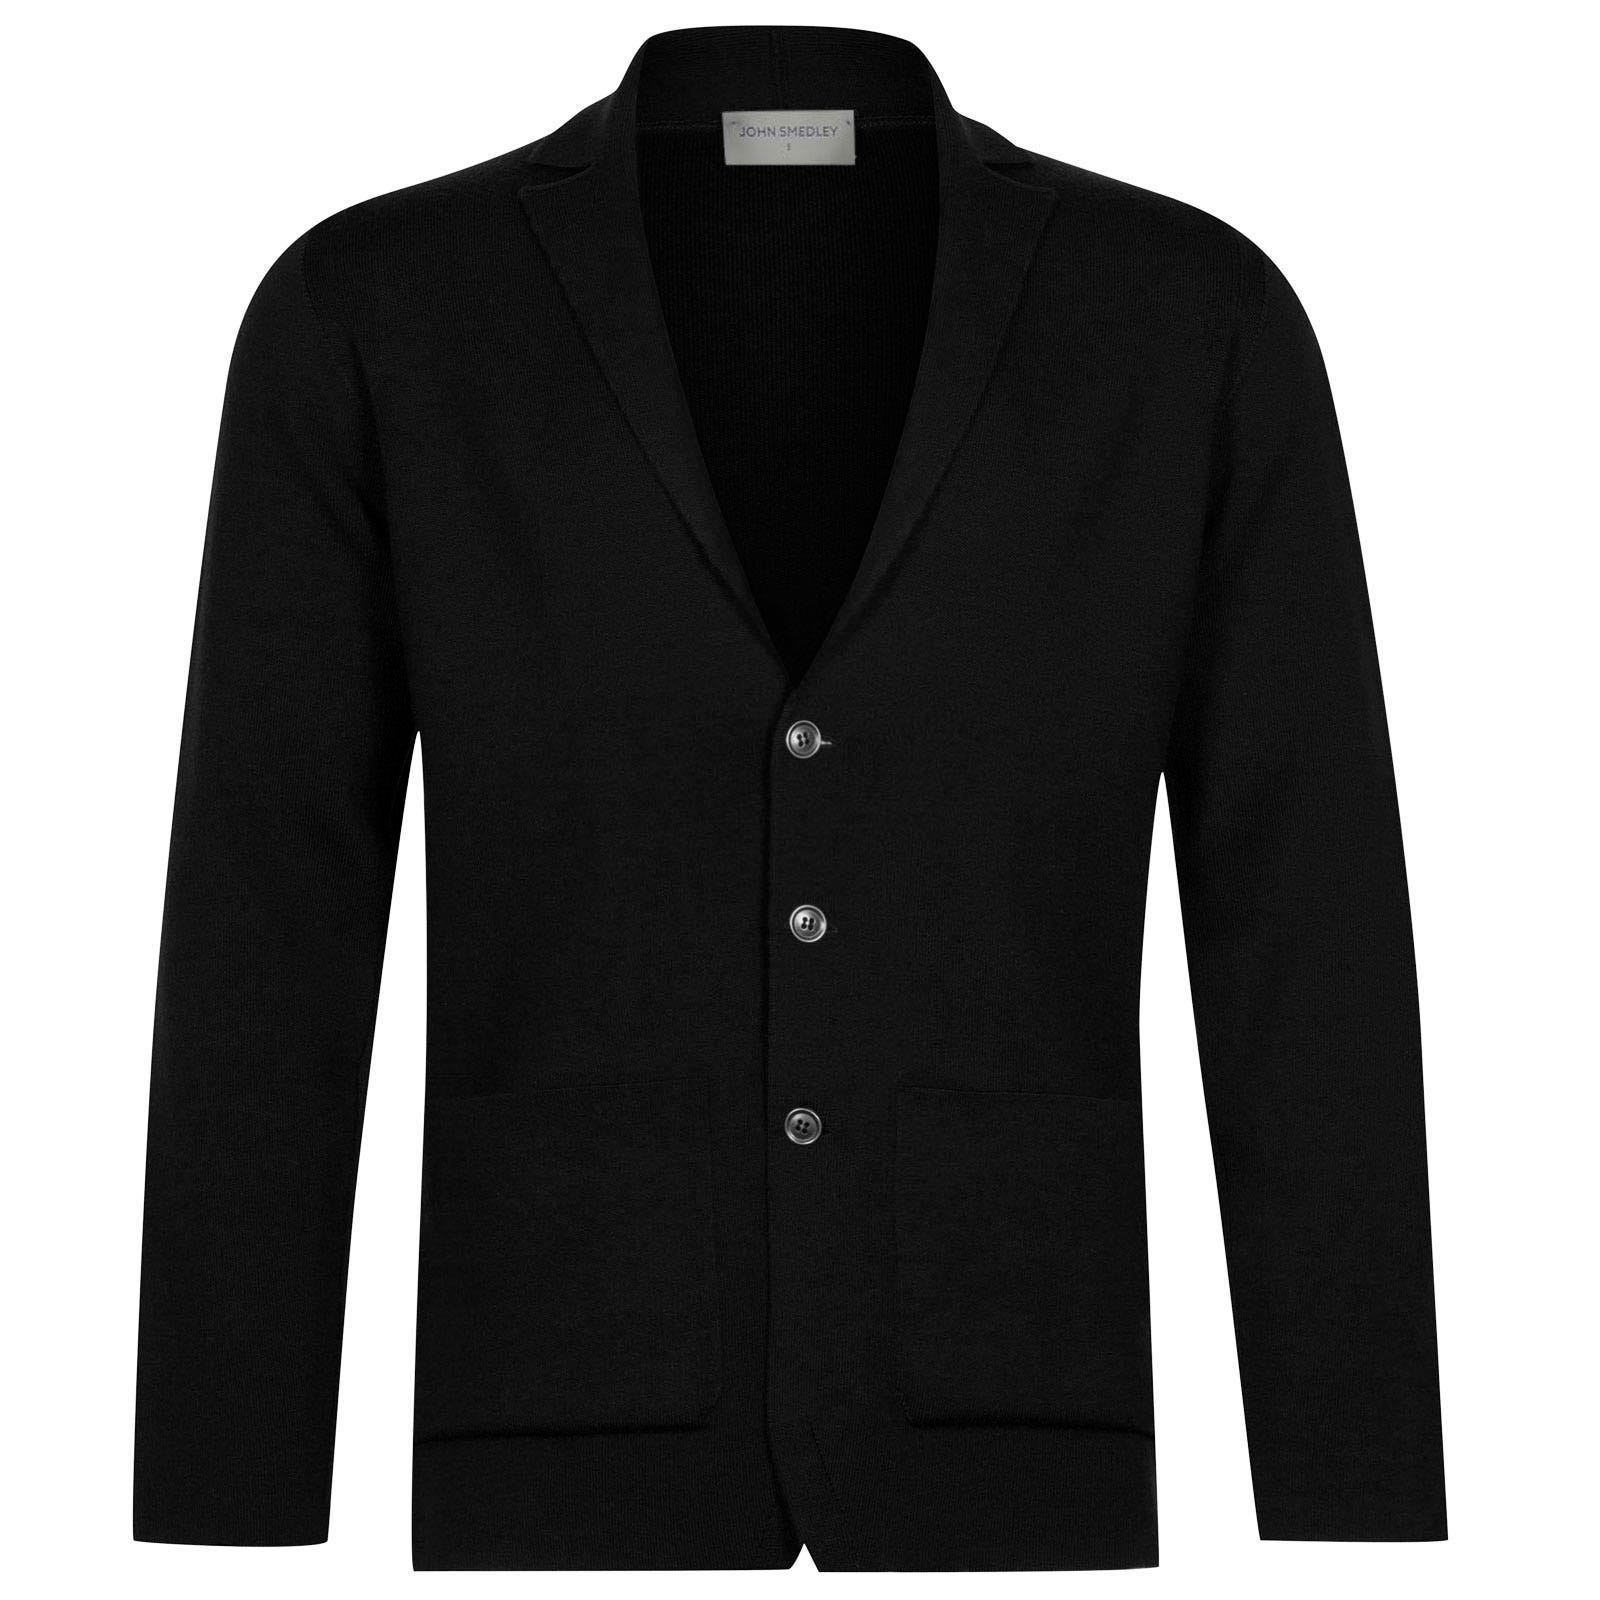 John Smedley Oxland Merino Wool Jacket in Black-S